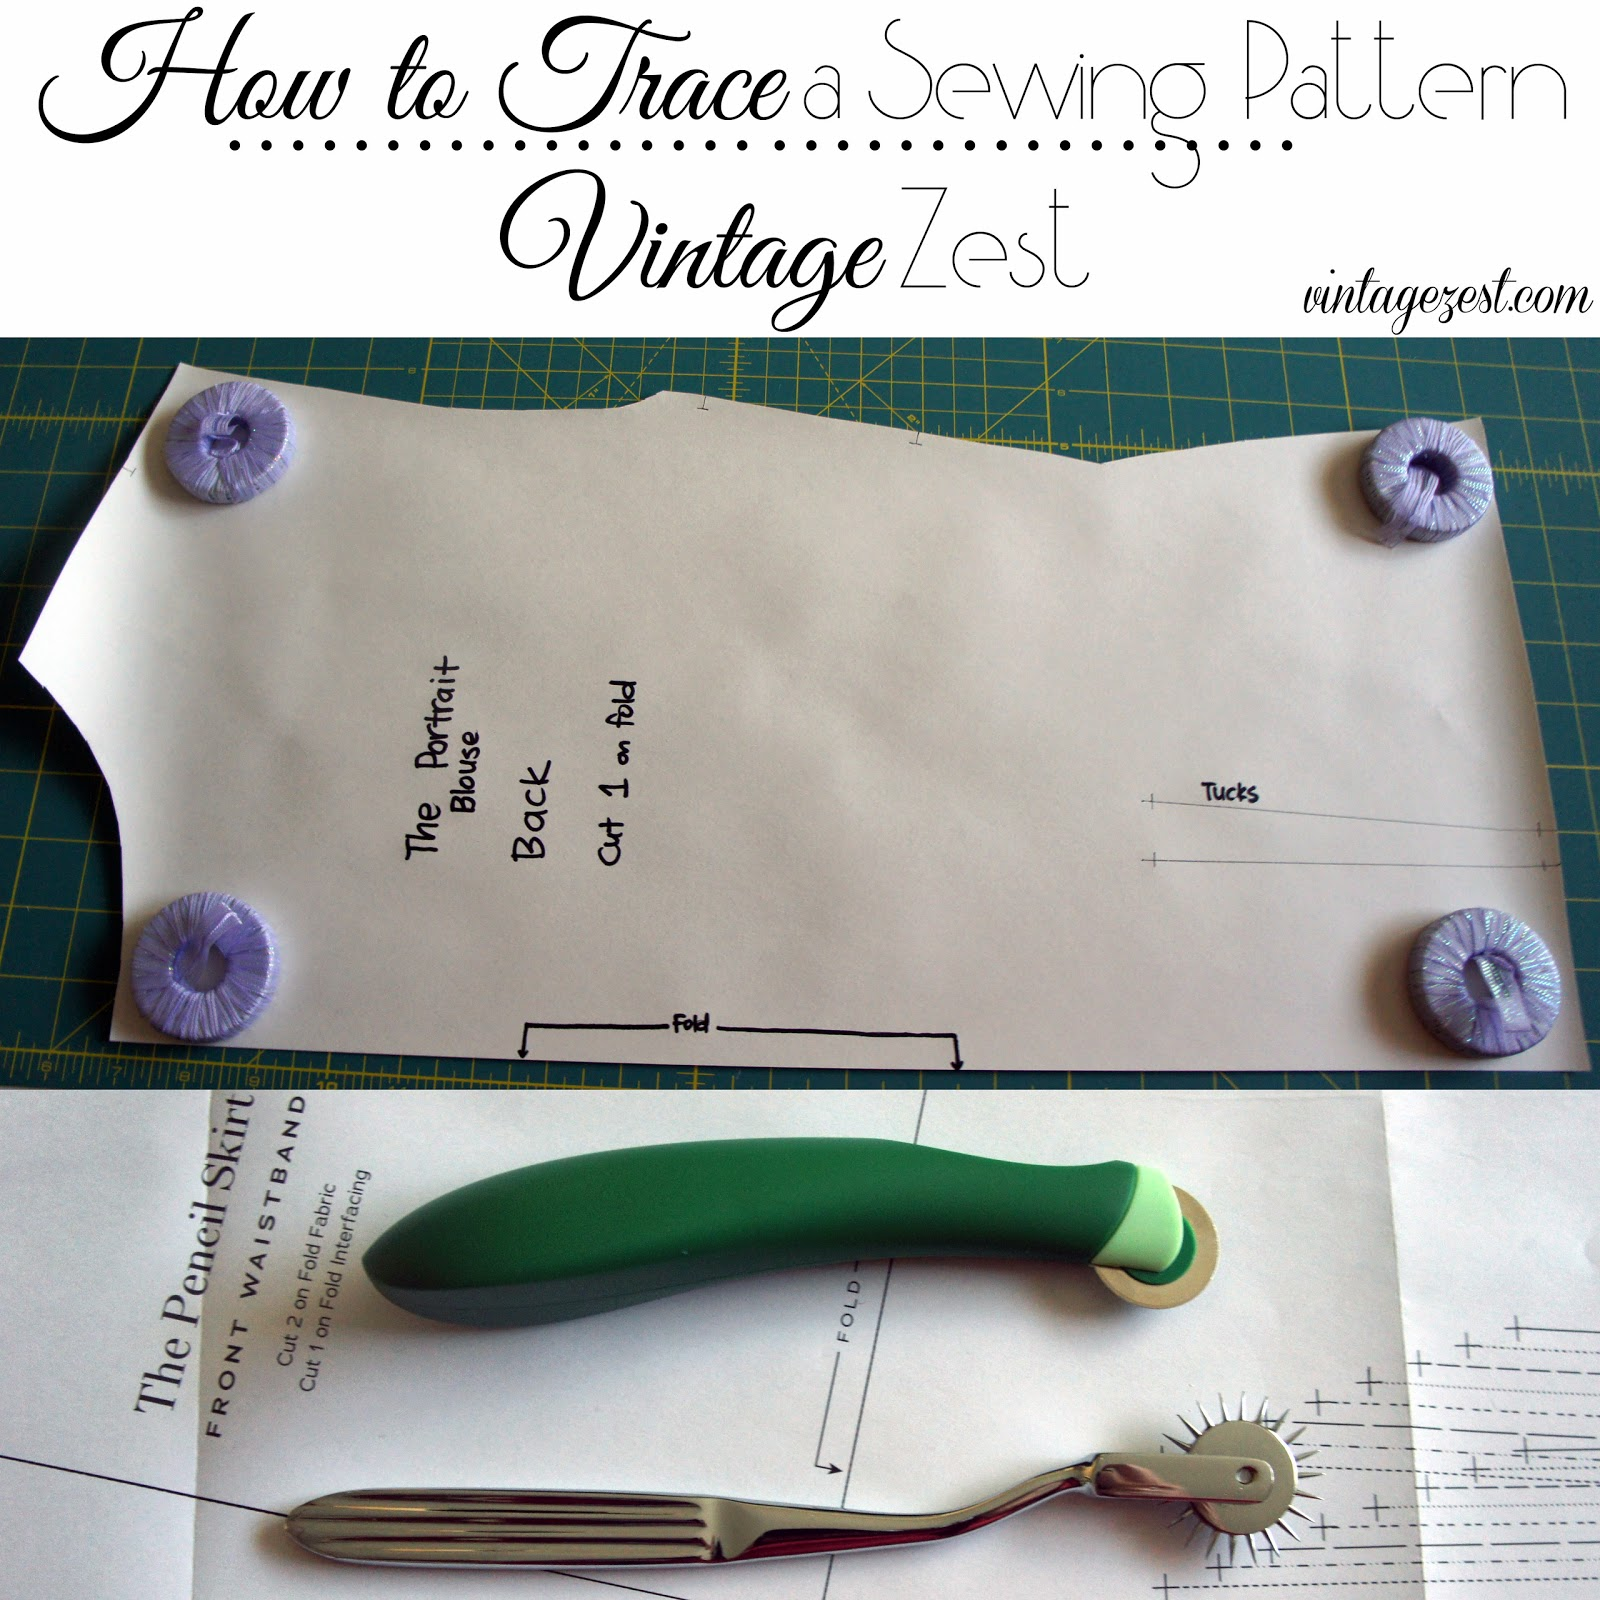 Tools For Tracing Sewing Patterns ~ Diane\'s Vintage Zest!